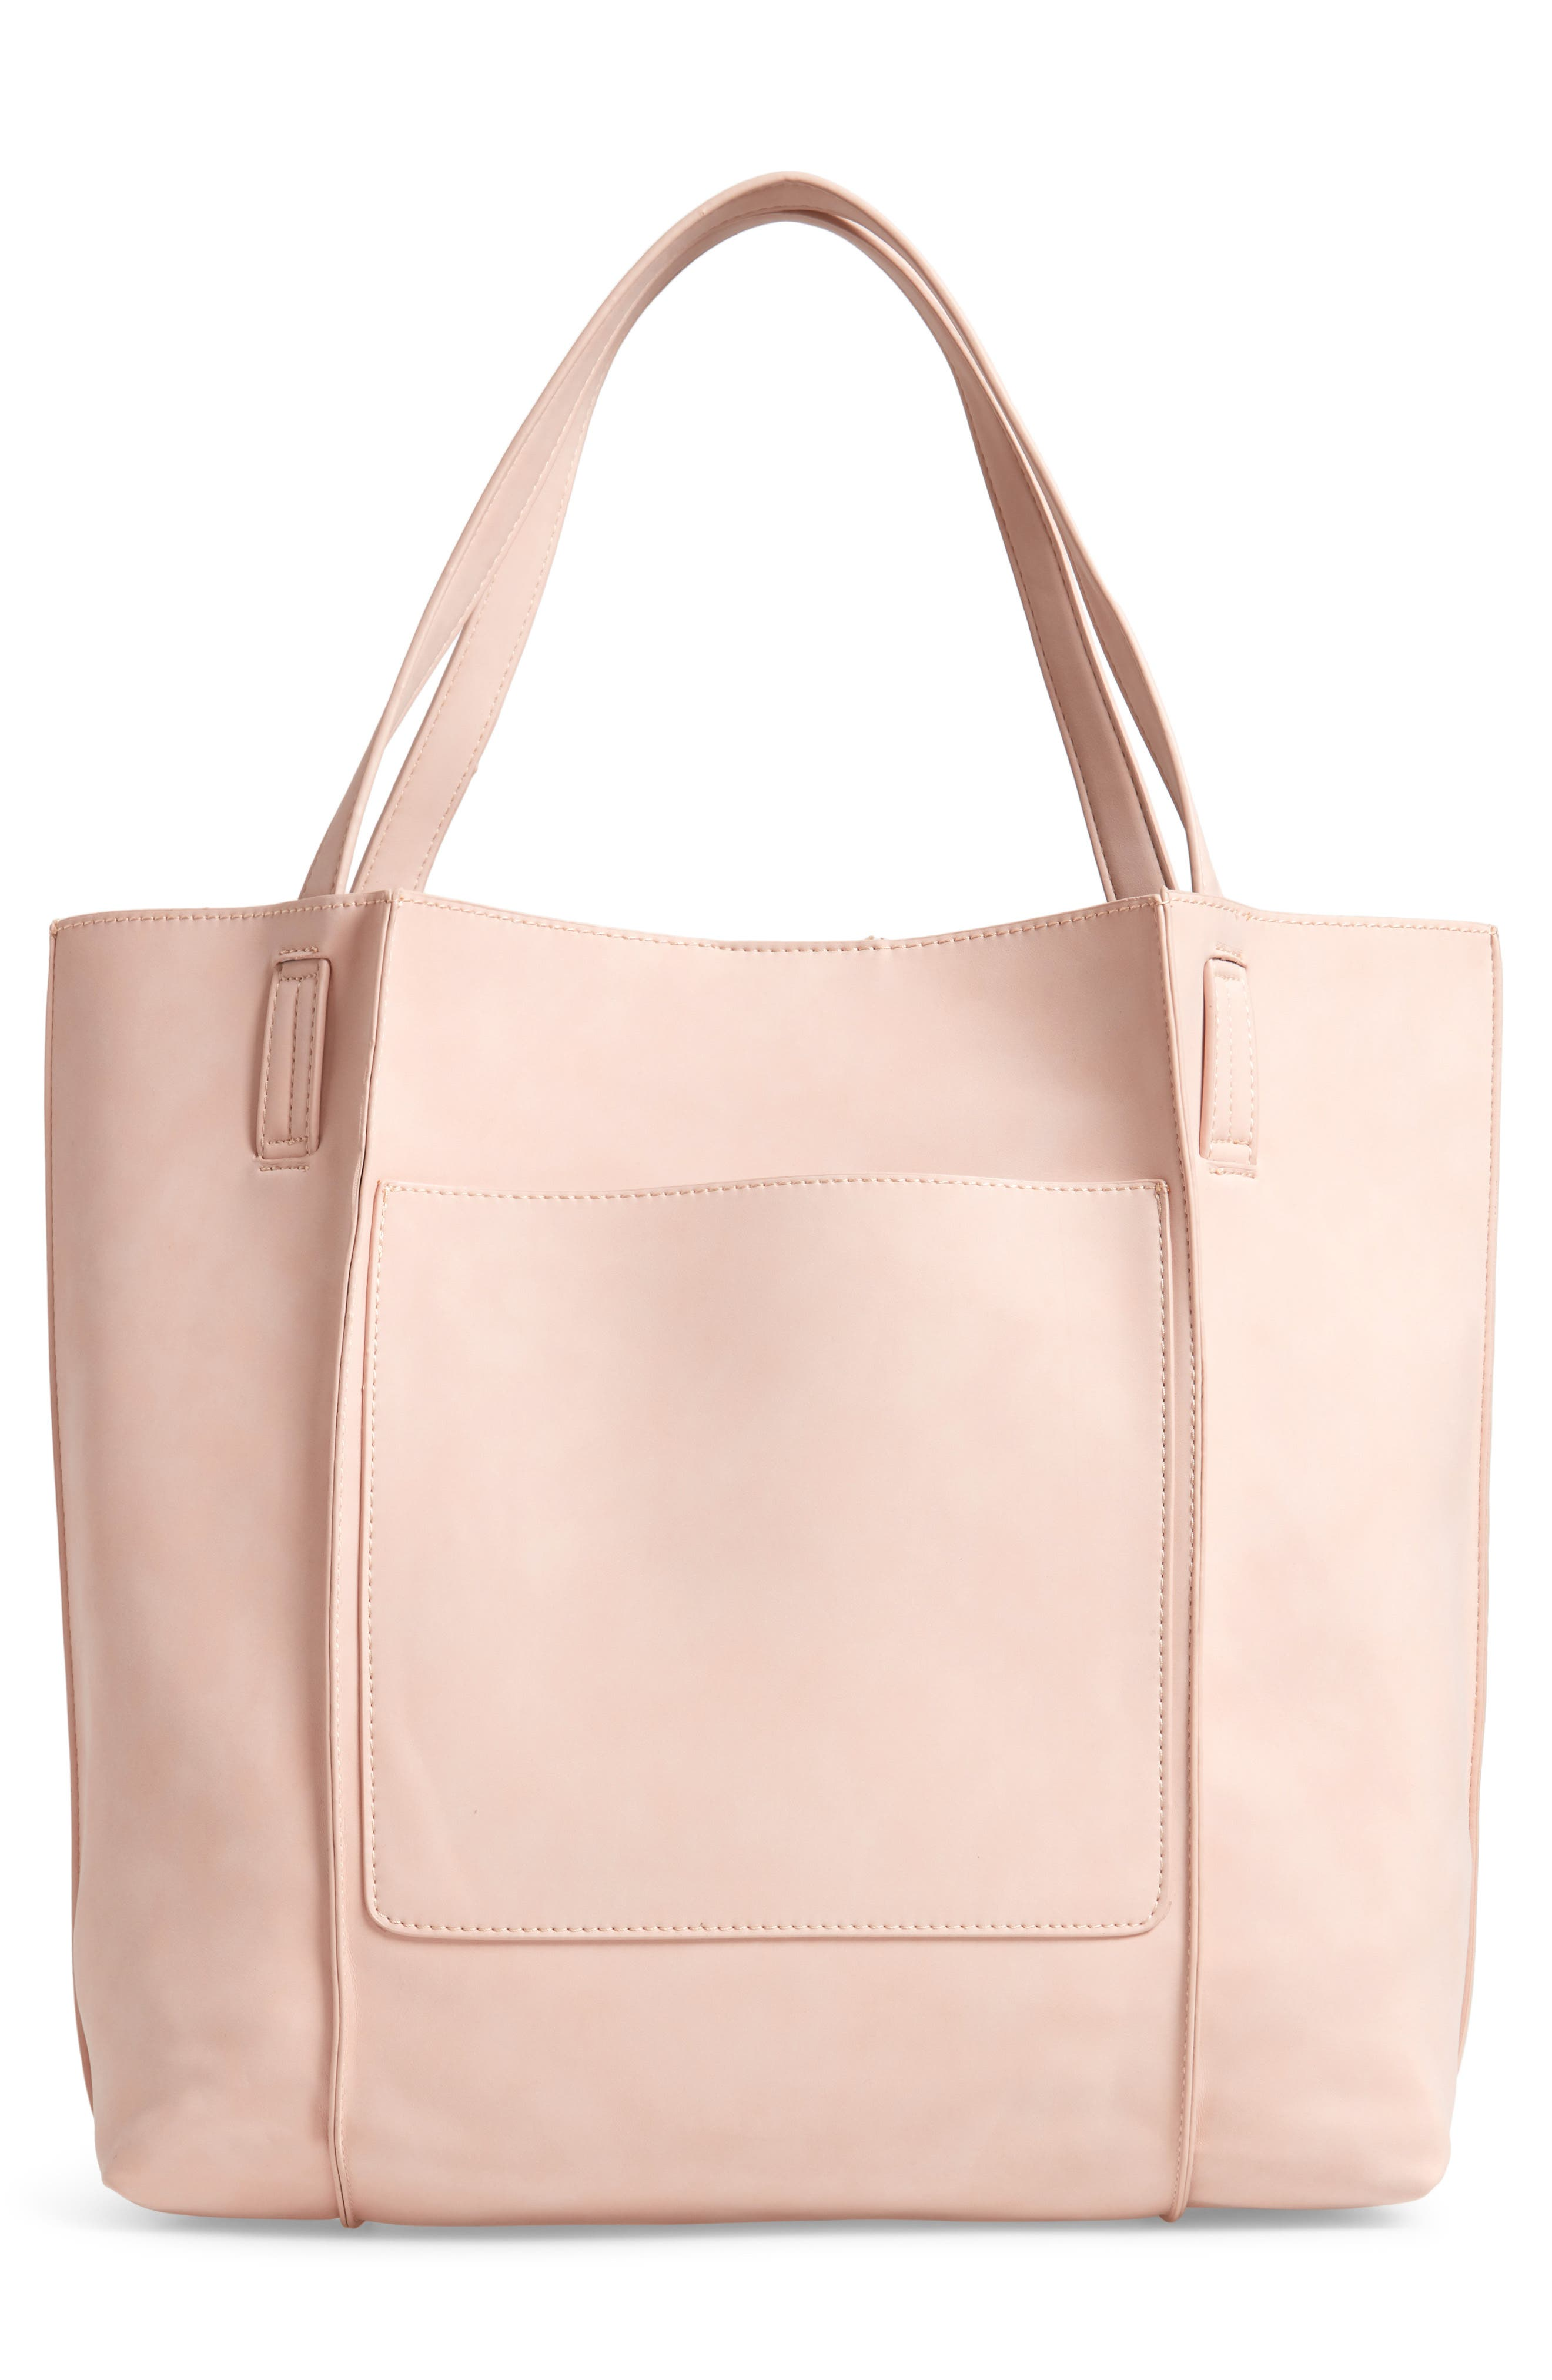 Blair Faux Leather Tote,                             Alternate thumbnail 3, color,                             BLUSH